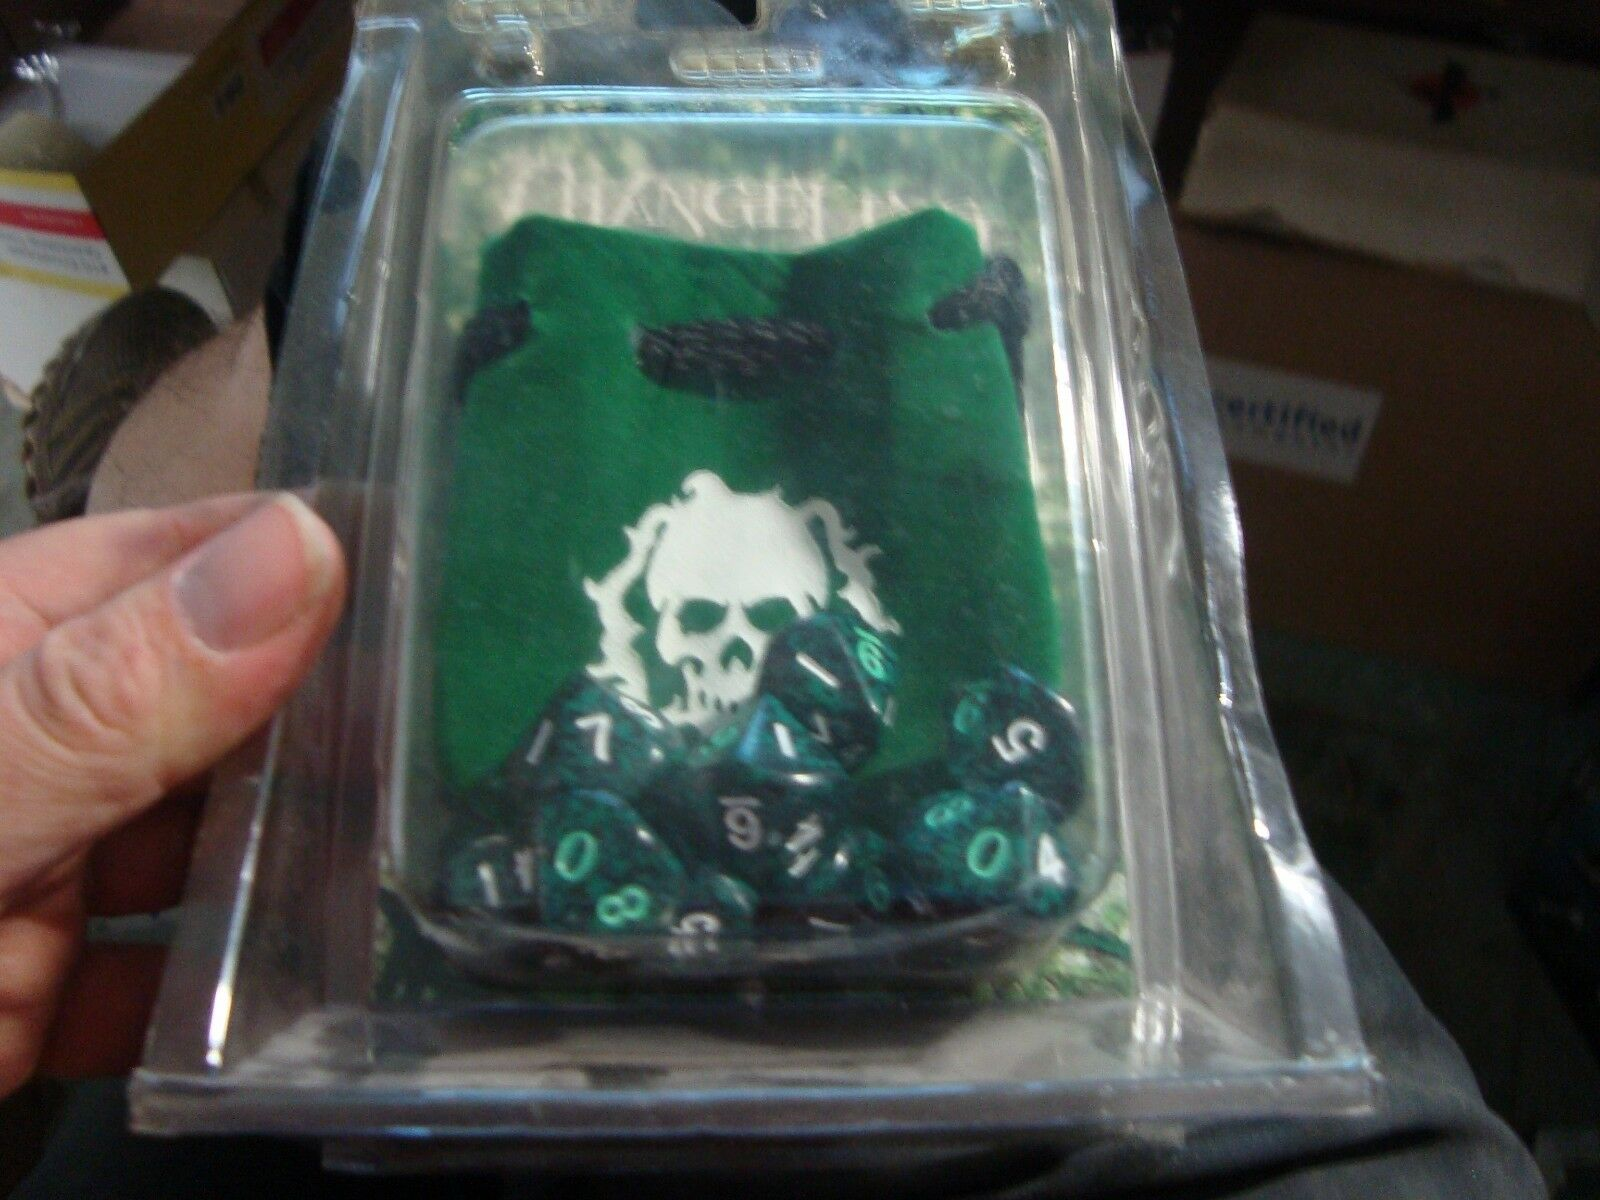 Changeling The Lost 2007 10x Dice Set 10 -sidig och Dice Bag New Oöppnad